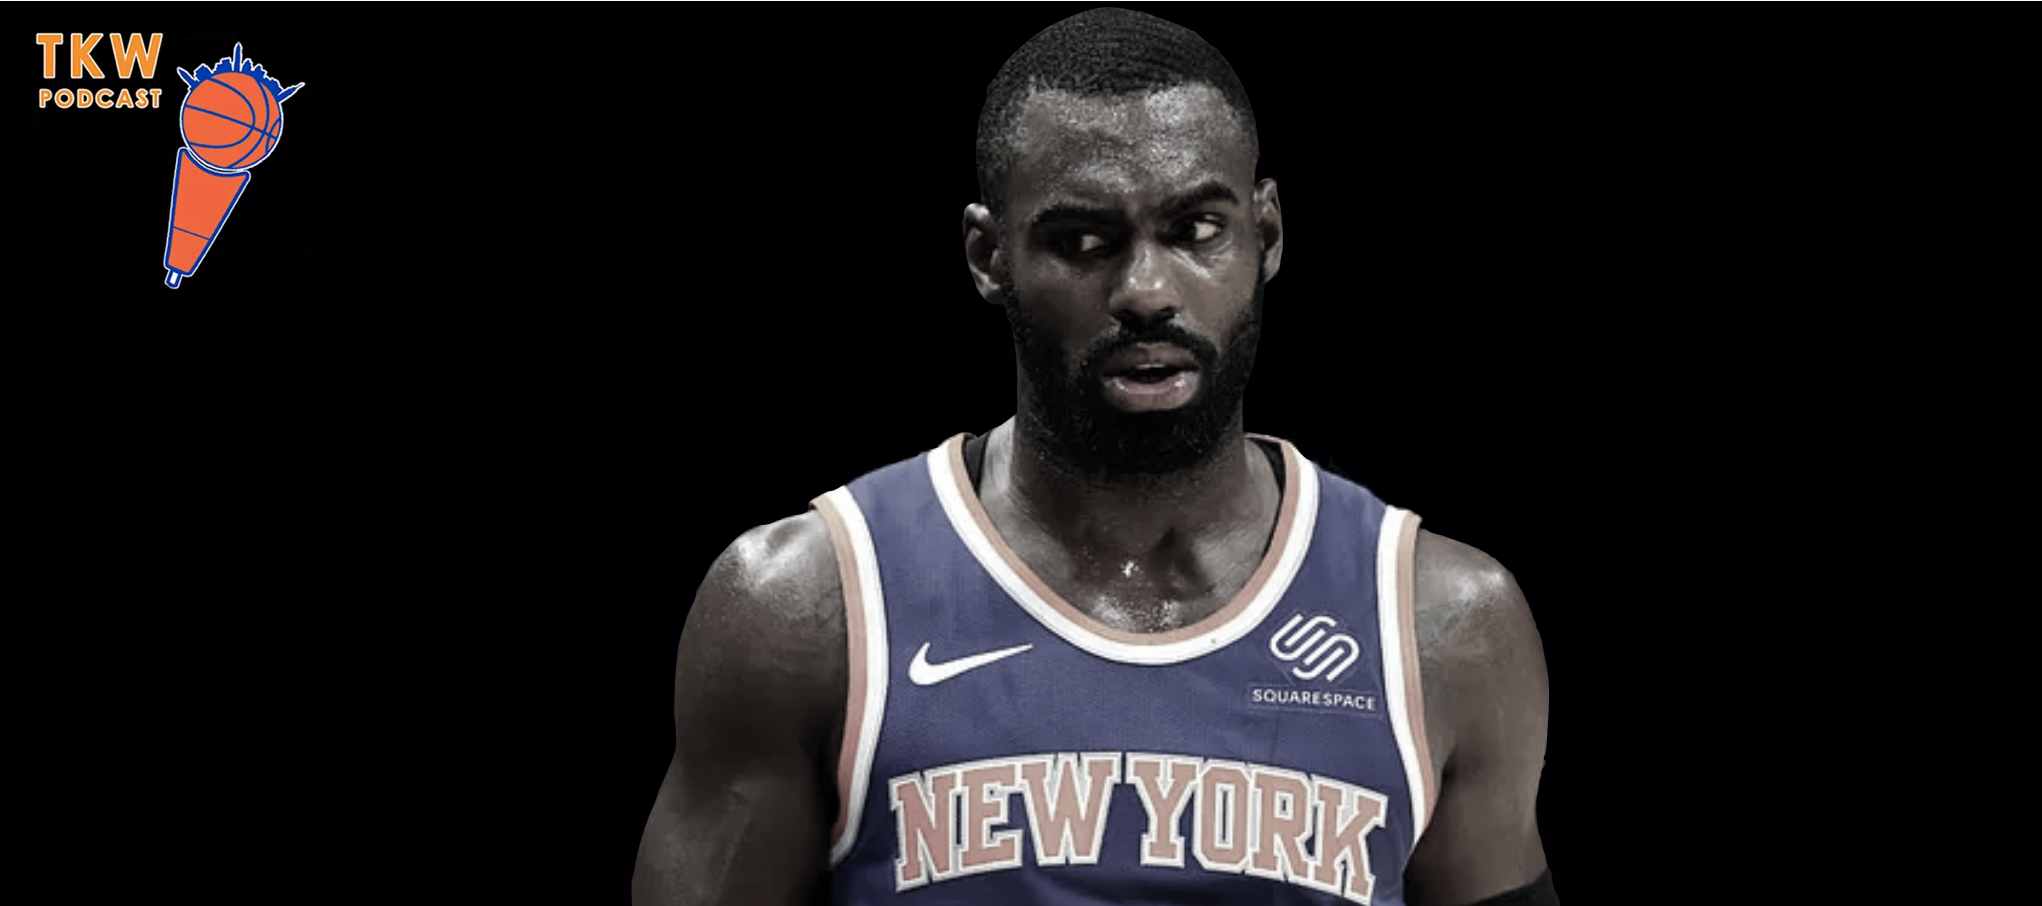 TKW Podcast: Spooky Knicks Loss, Timmy's Value & The Intriguing Noah Vonleh